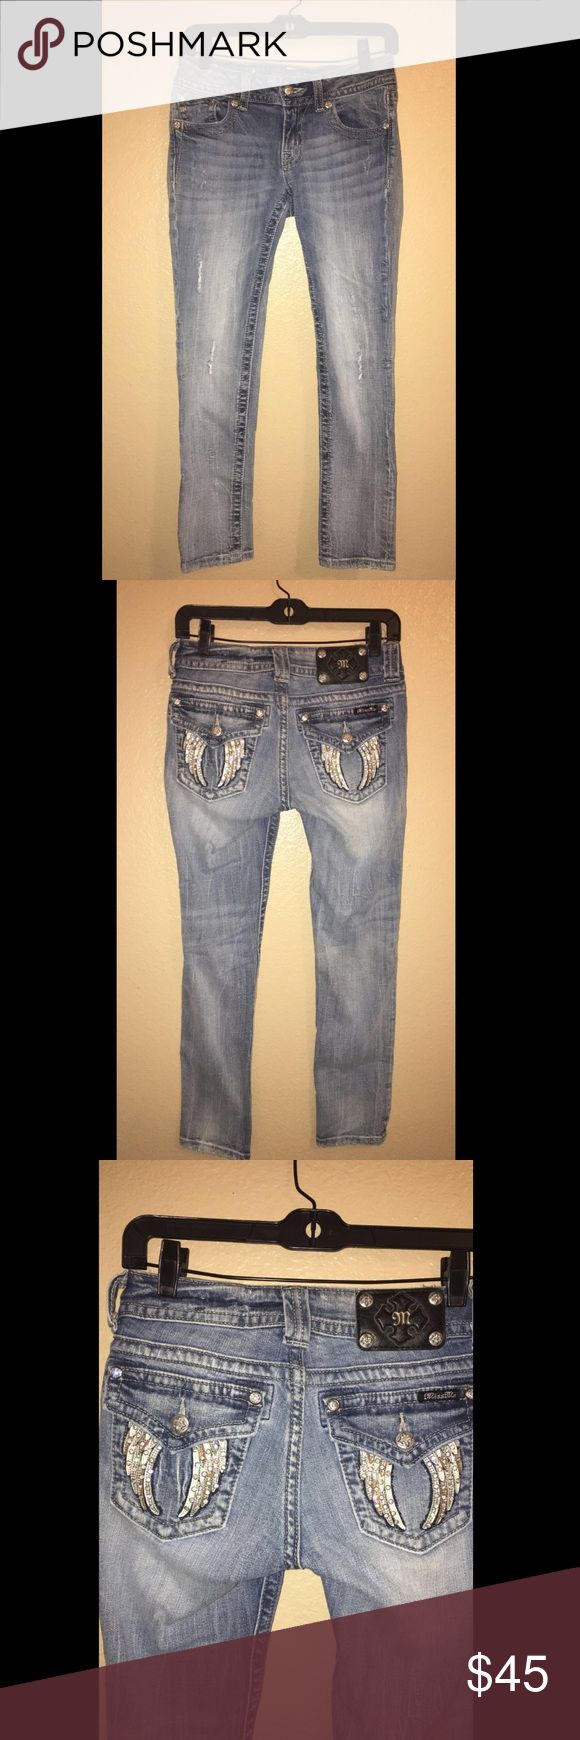 NWOT Miss Mes SZ 27 Ankle Skinnys NWOT Miss Mes SZ 27 inseam: 26in Miss Me Jeans Ankle & Cropped